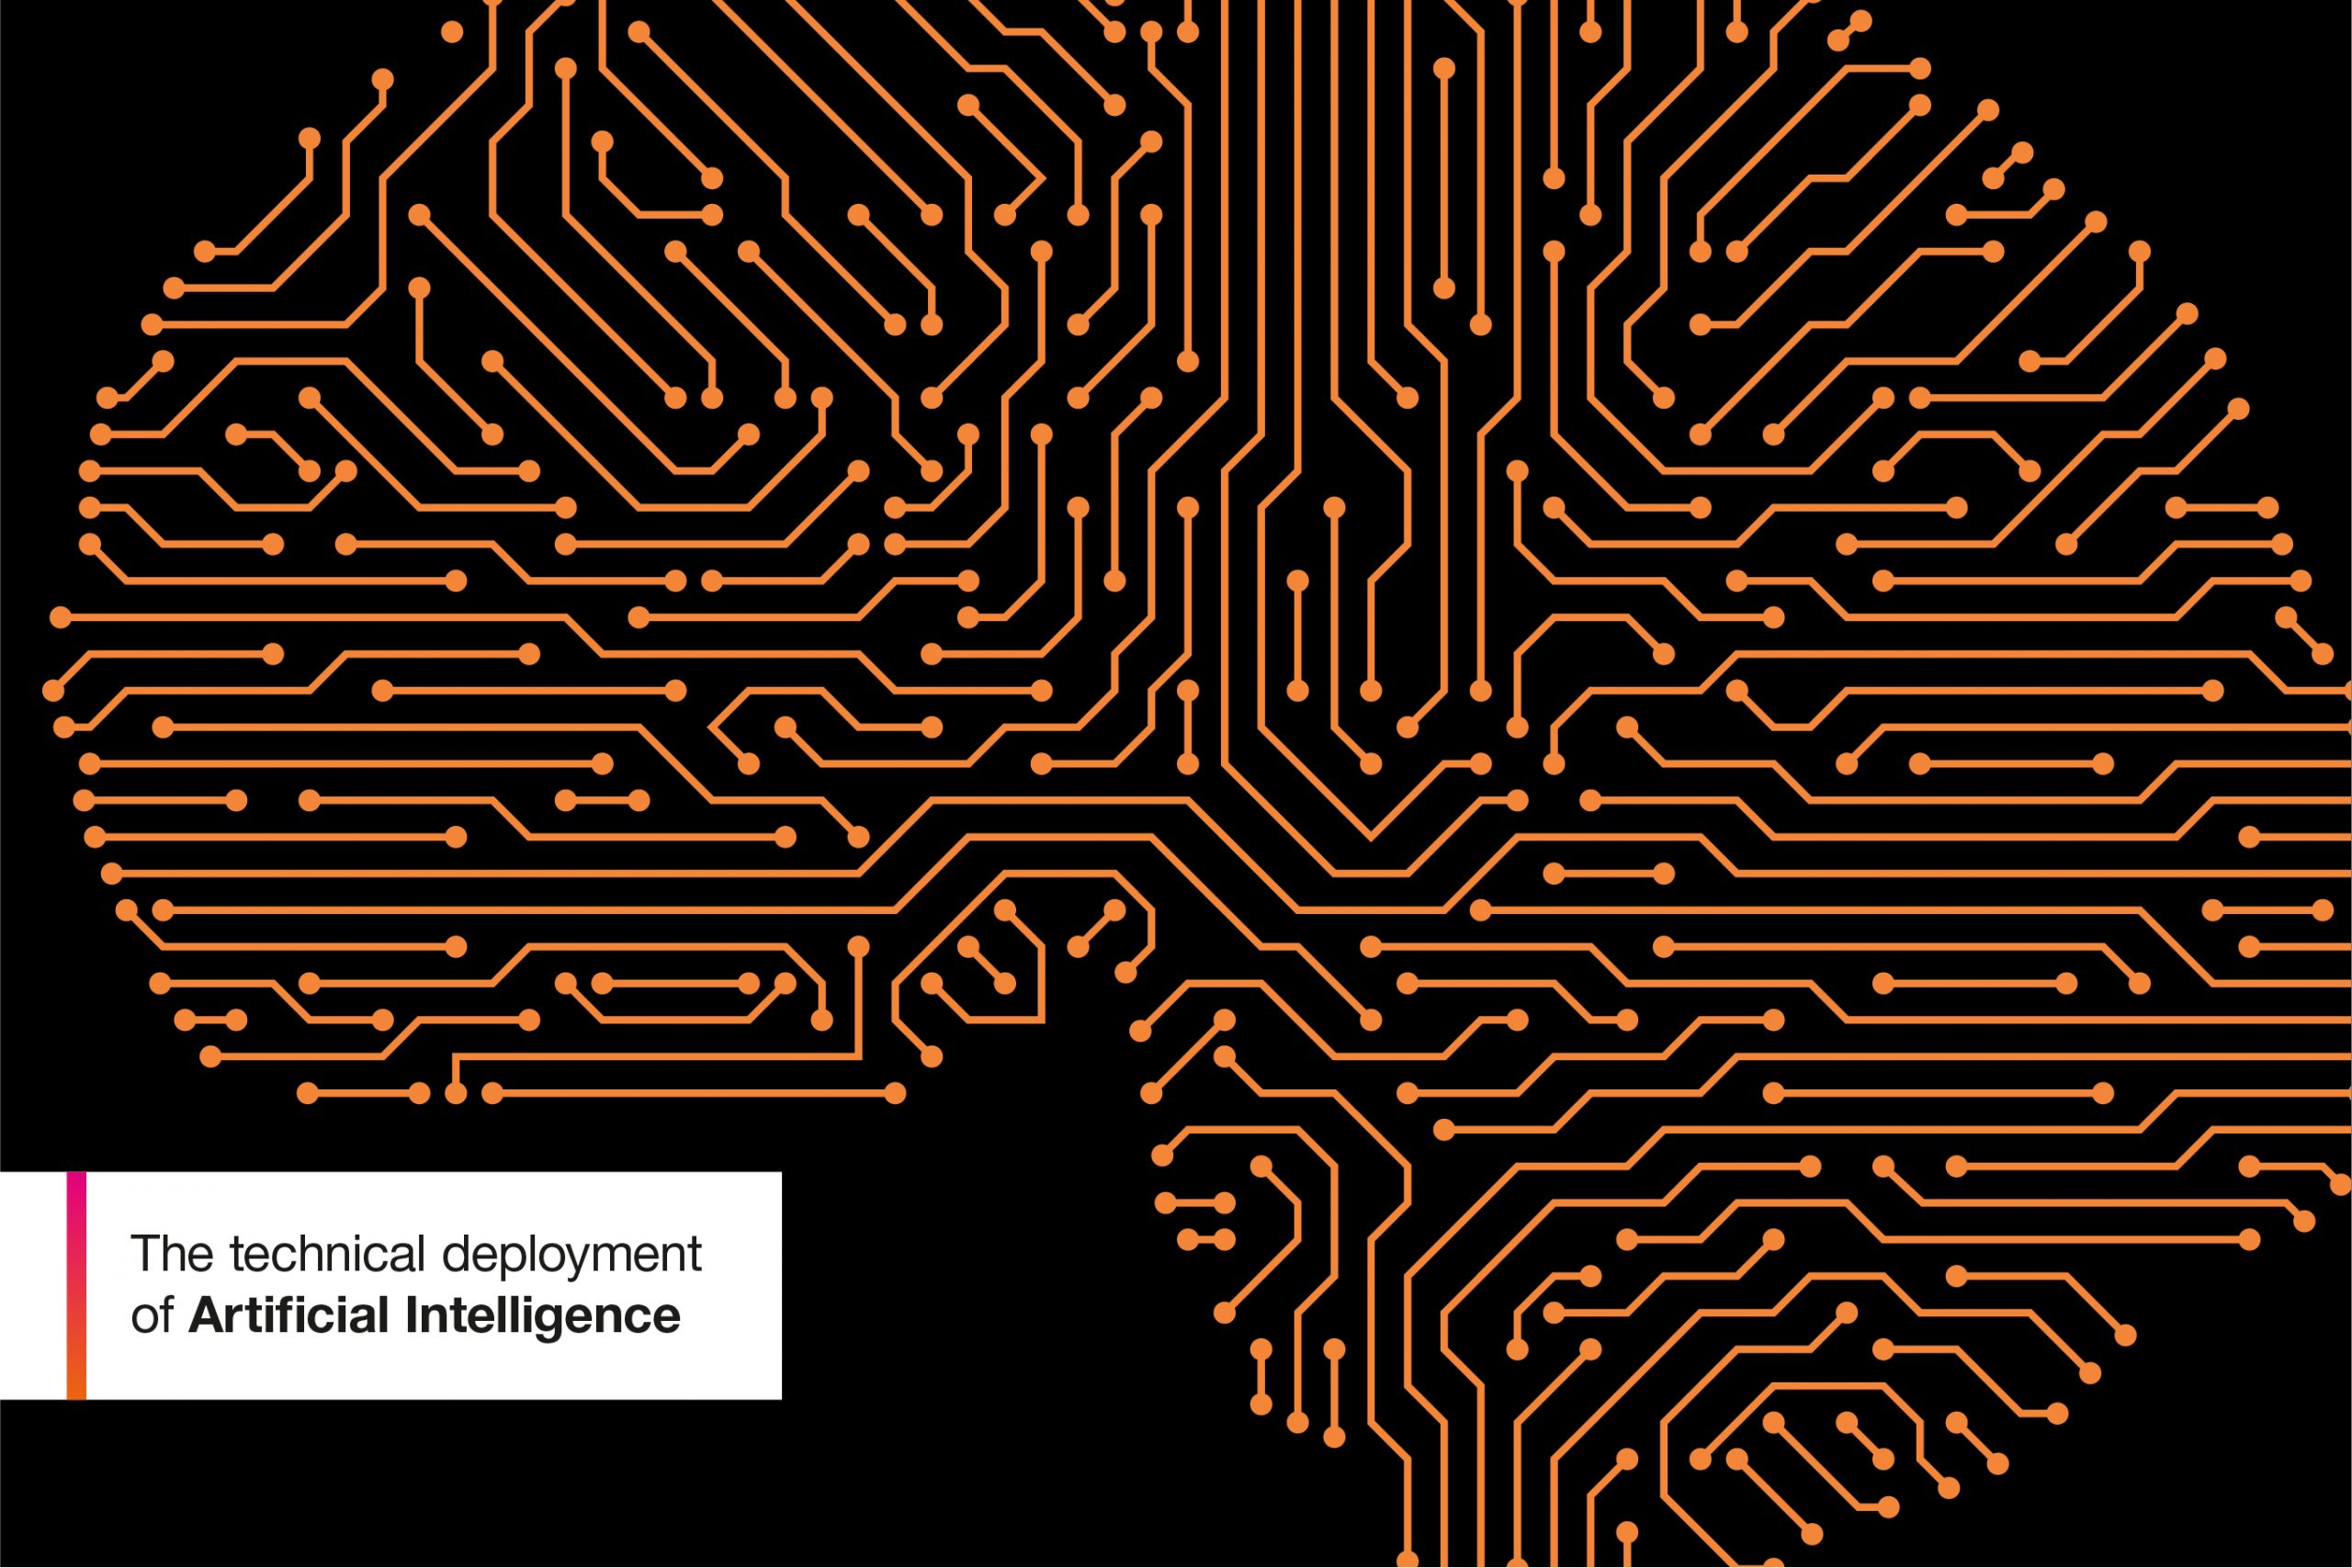 Orange graphics depicting elements of artificial intelligence against a black background with the caption Delivering Artificial Intelligence at the Intellectual Property Office.